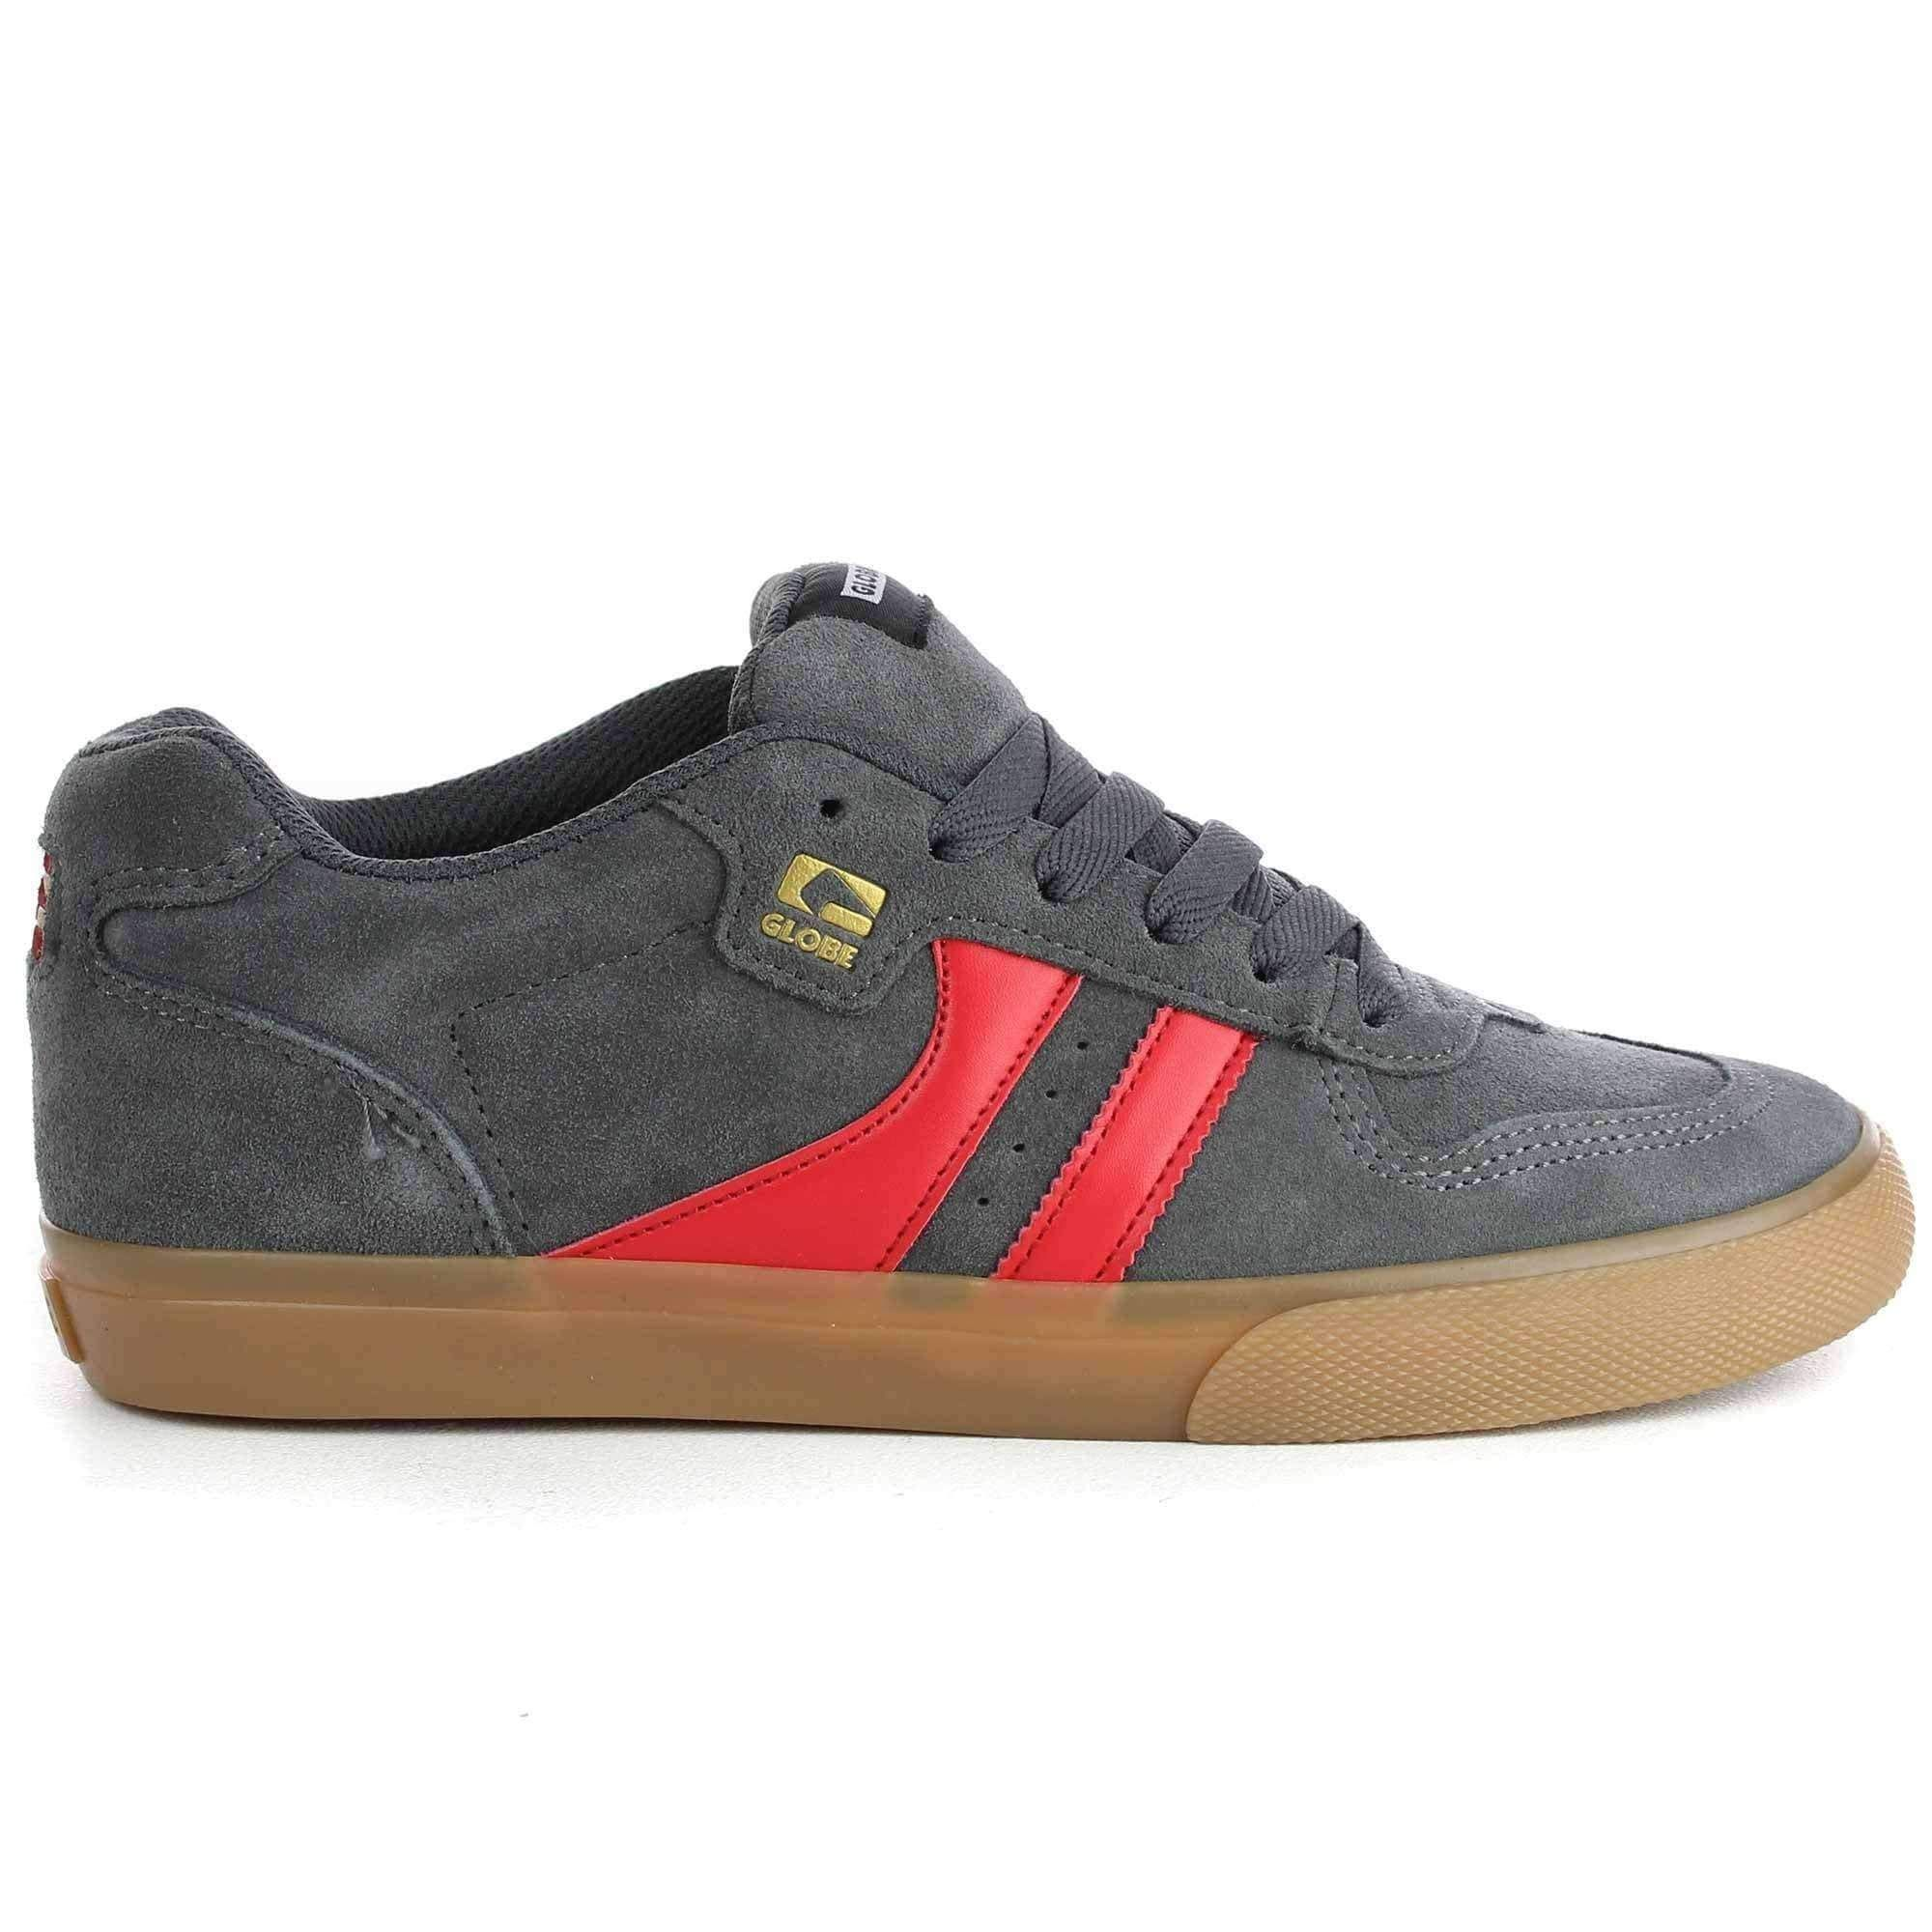 Globe Encore 2 Shoes In Charcoal Gum Red In 2020 Mens Skate